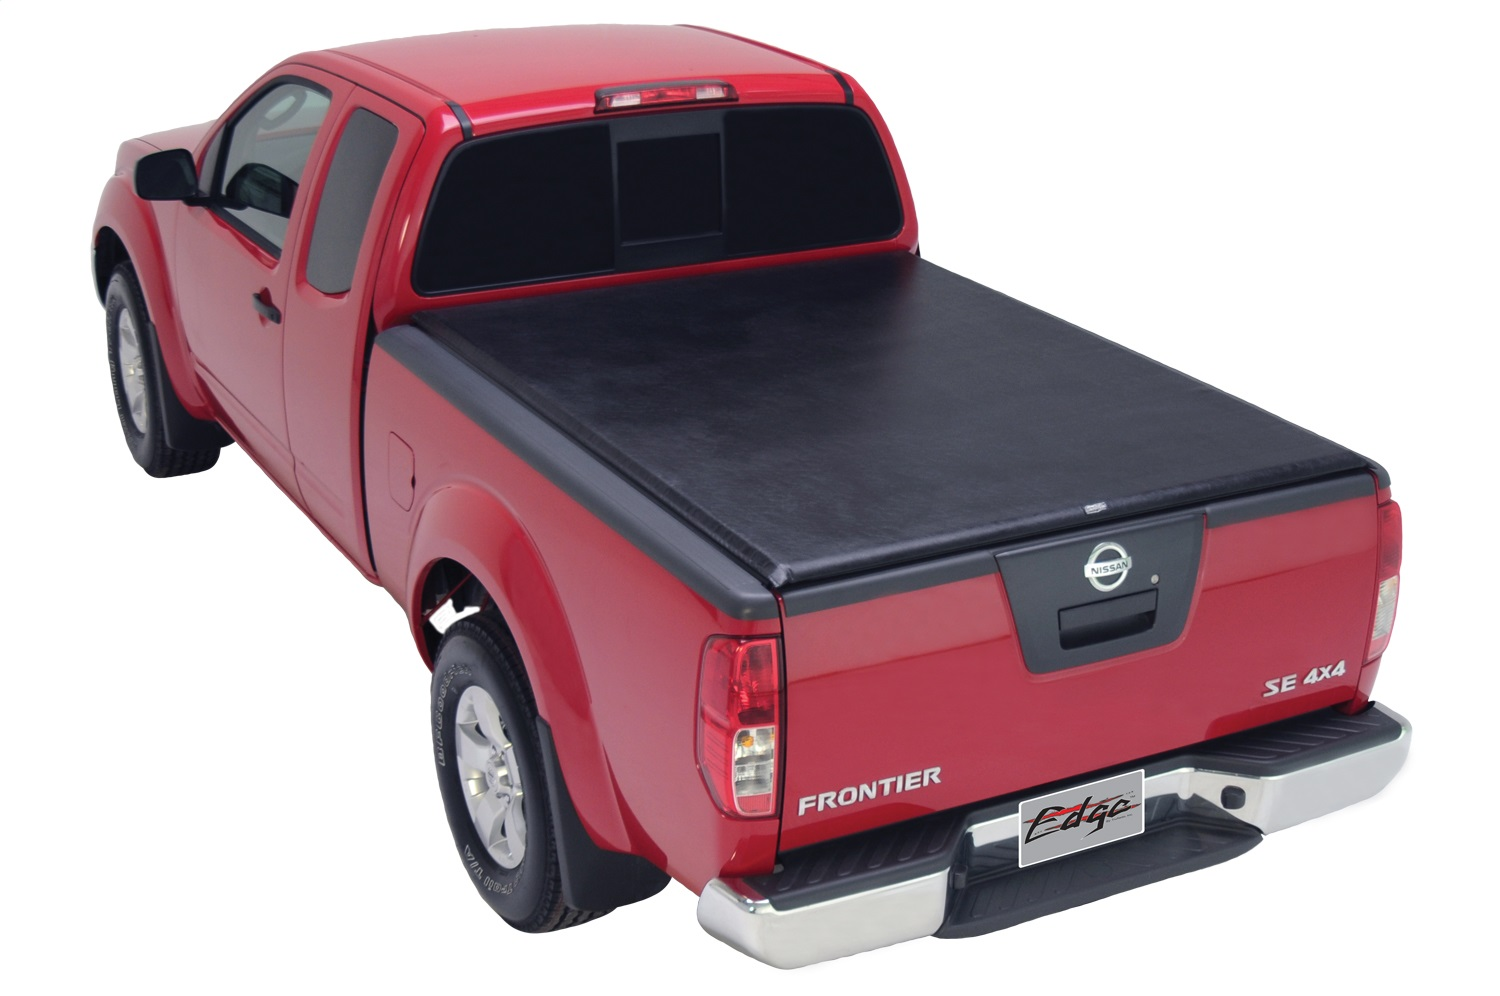 Truxedo (Shur-co) Tonneau Cover (892301)